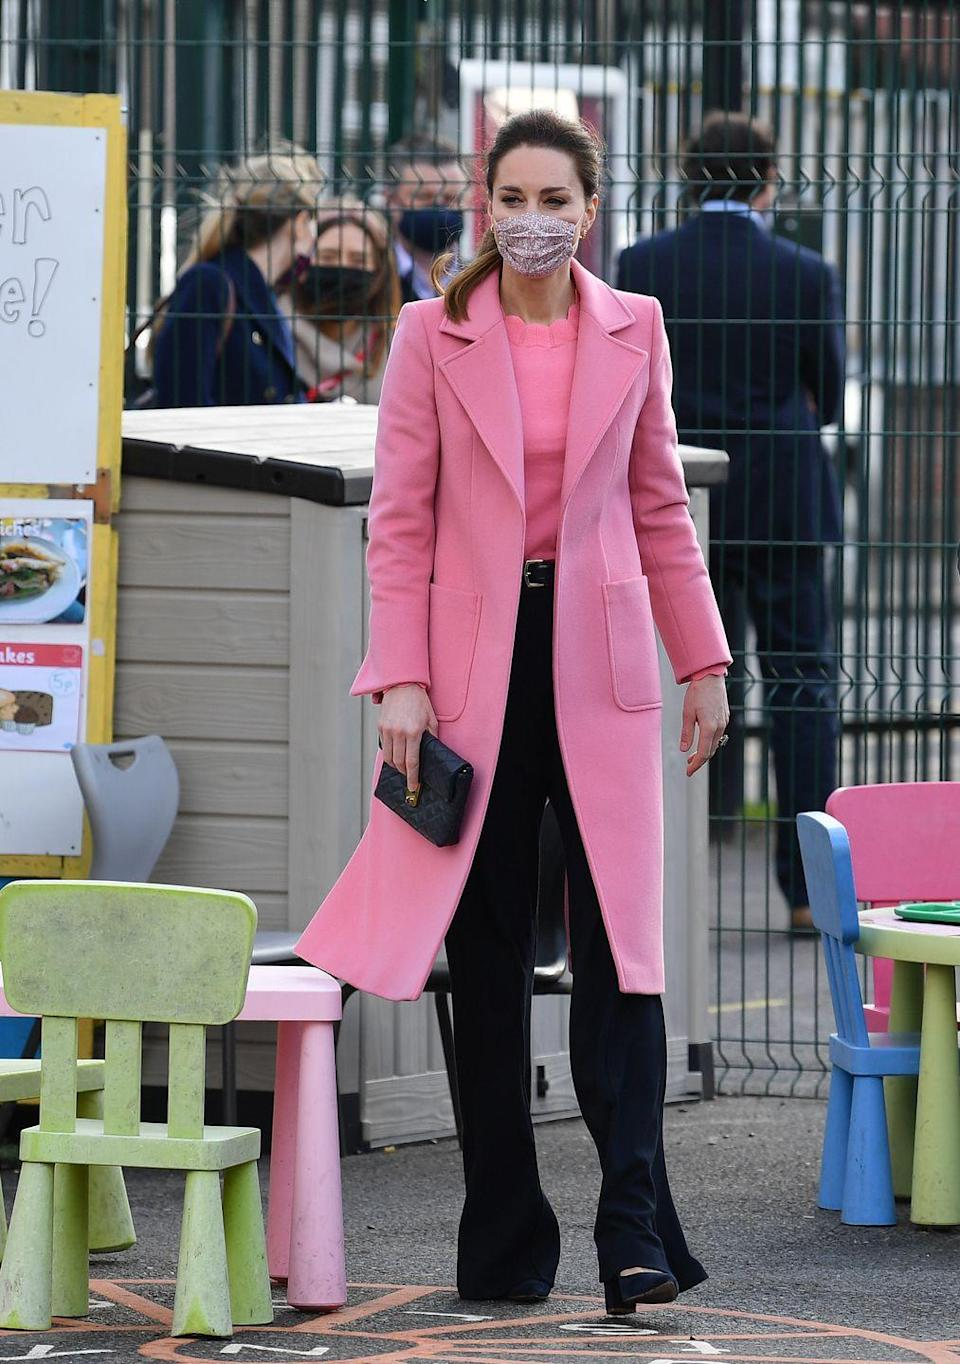 """<p>Kate sported a matching pink knit top and coat with pointed-toe block heels while celebrating the reopening of an east London school that closed due to COVID-19 restrictions. It was at this event that William and Kate spoke about Harry and Meghan's interview with Oprah, making them <a href=""""https://www.townandcountrymag.com/society/tradition/a35807572/prince-william-says-royal-family-not-racist-following-prince-harry-meghan-markle-oprah-interview/"""" rel=""""nofollow noopener"""" target=""""_blank"""" data-ylk=""""slk:the first royals to do so"""" class=""""link rapid-noclick-resp"""">the first royals to do so</a>. <br></p>"""